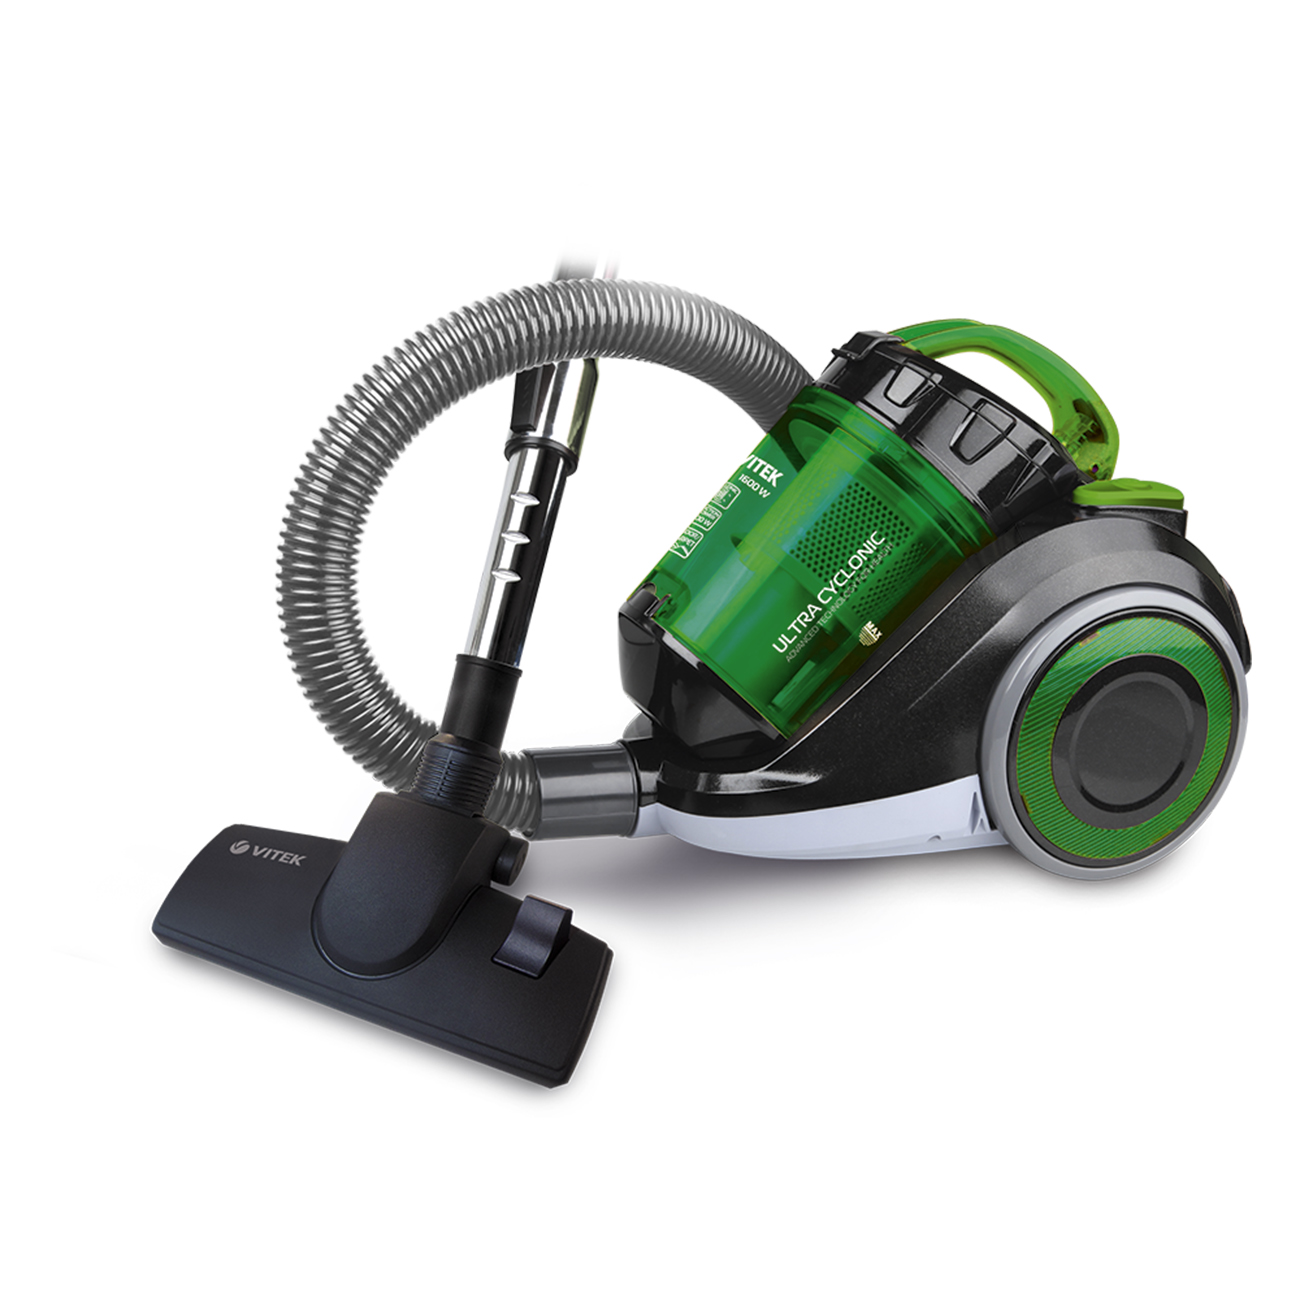 Electric vacuum cleaner Vitek VT-1815 G пылесос vitek vt 1815 g